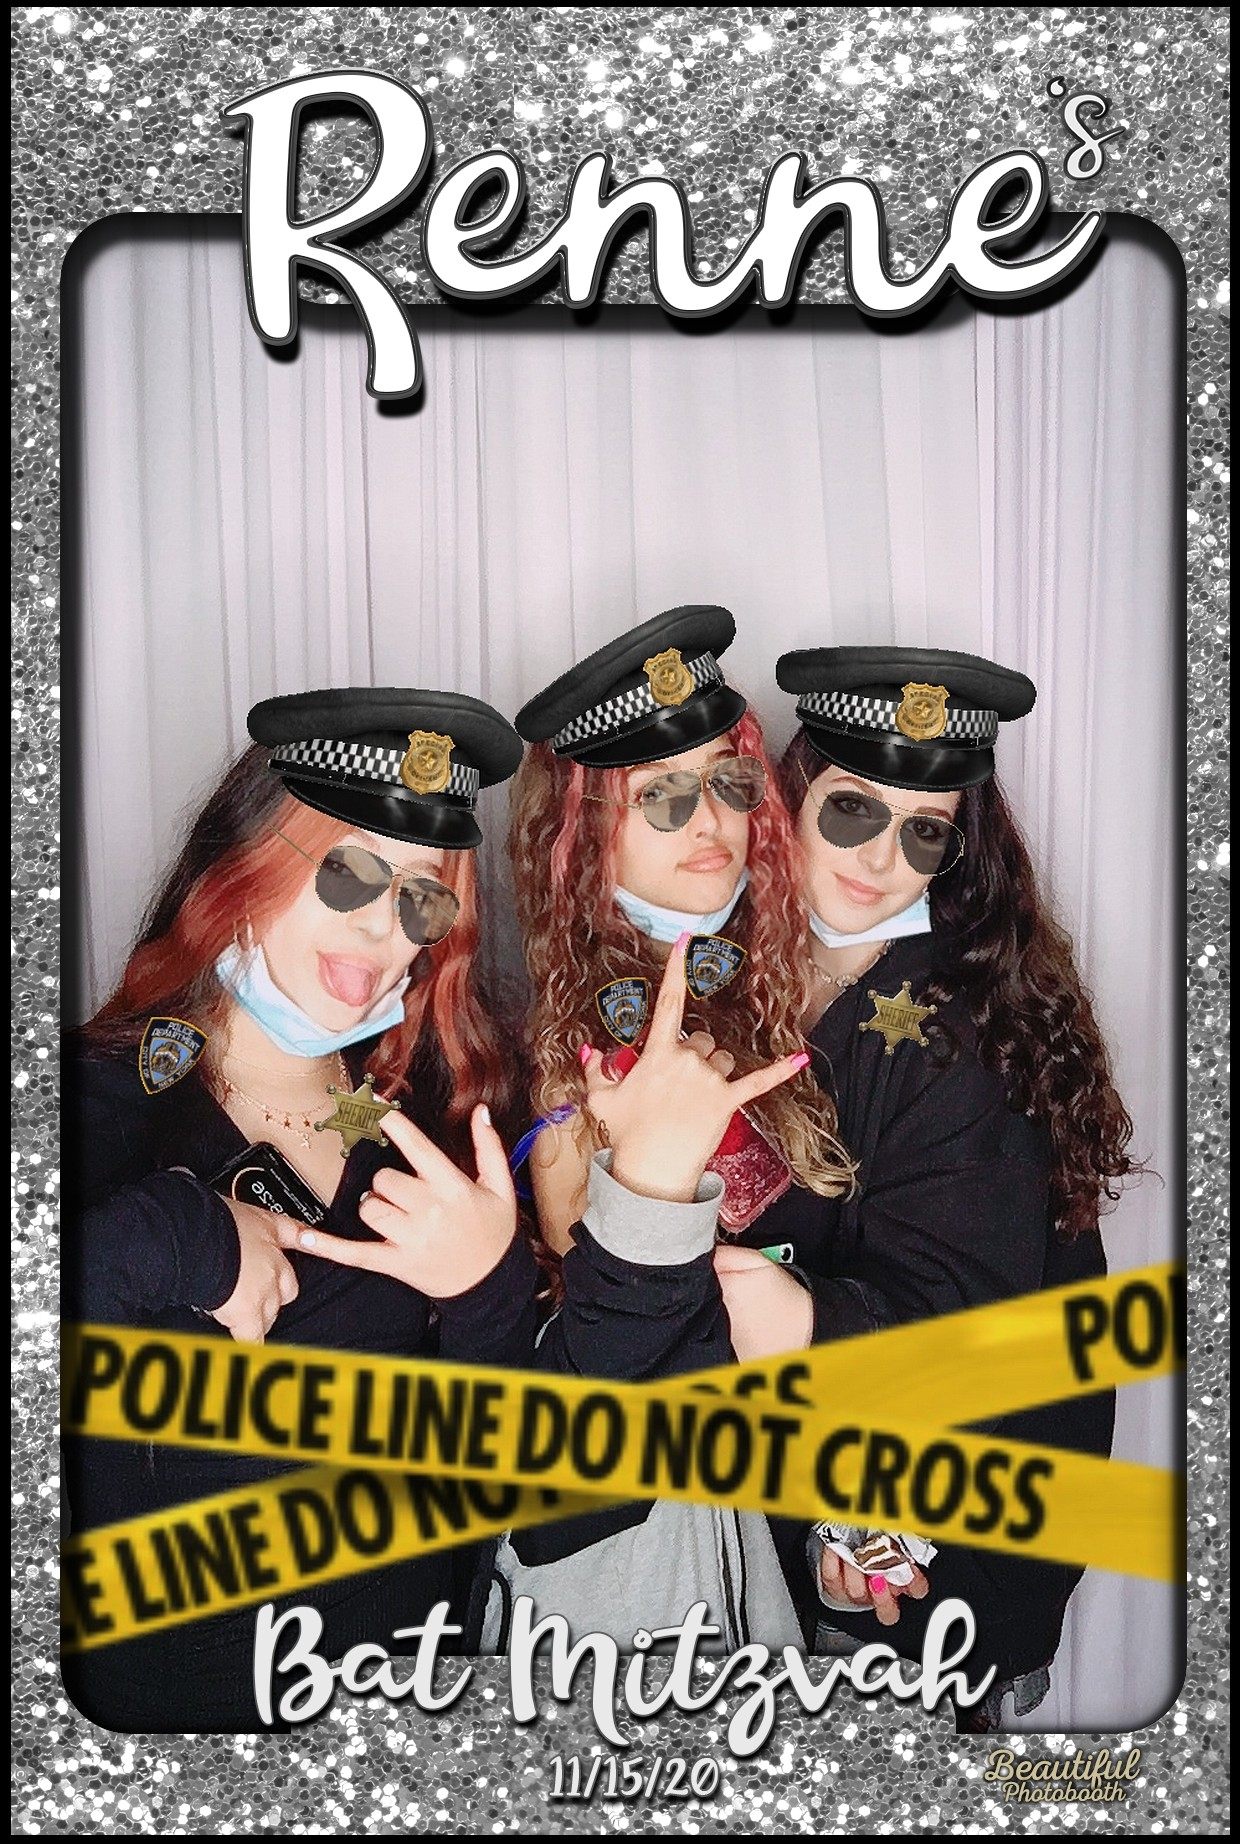 Renne's Bat Mitzvah Photo Booth Los Angeles 360 party booth rental Los Angeles California